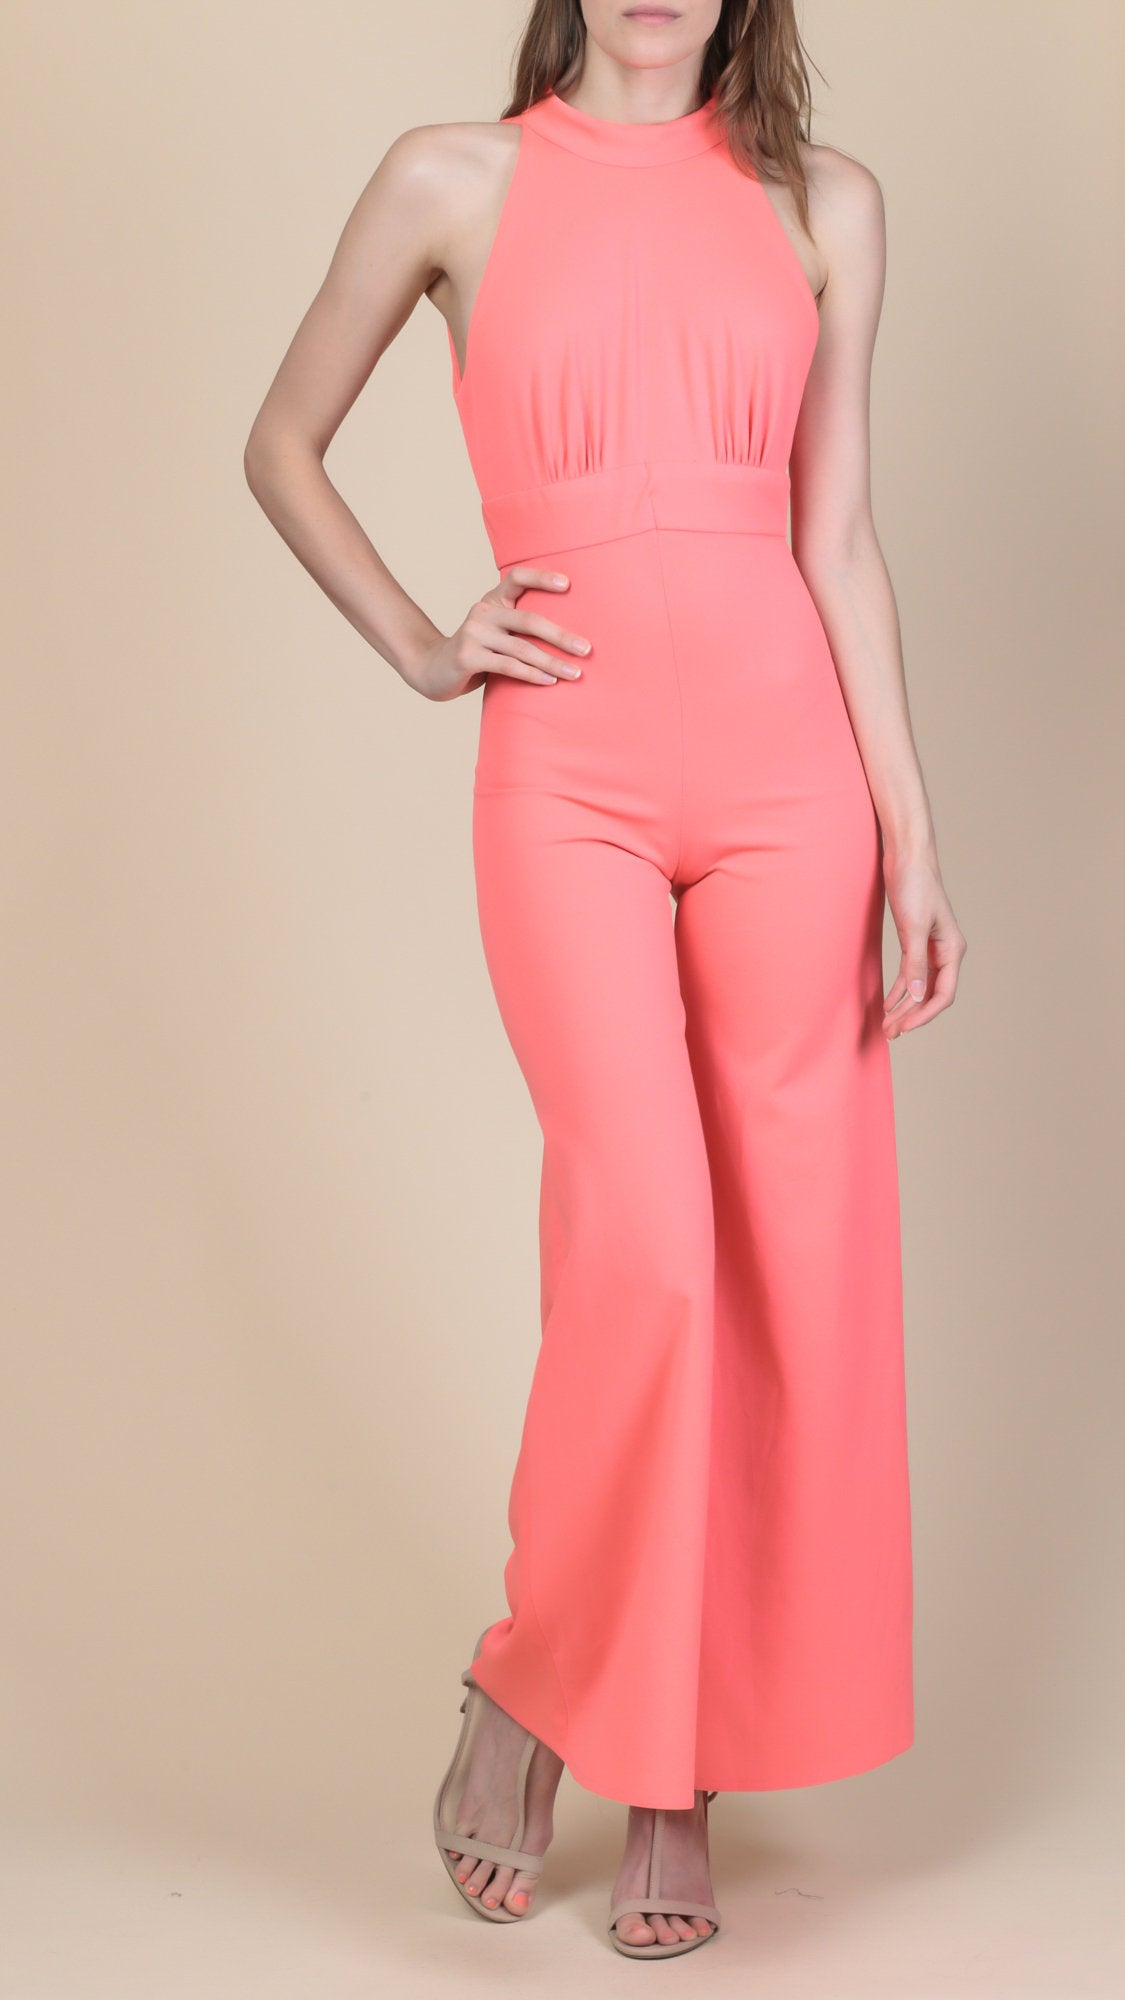 70s Pink Bell Bottom Jumpsuit - Petite XS